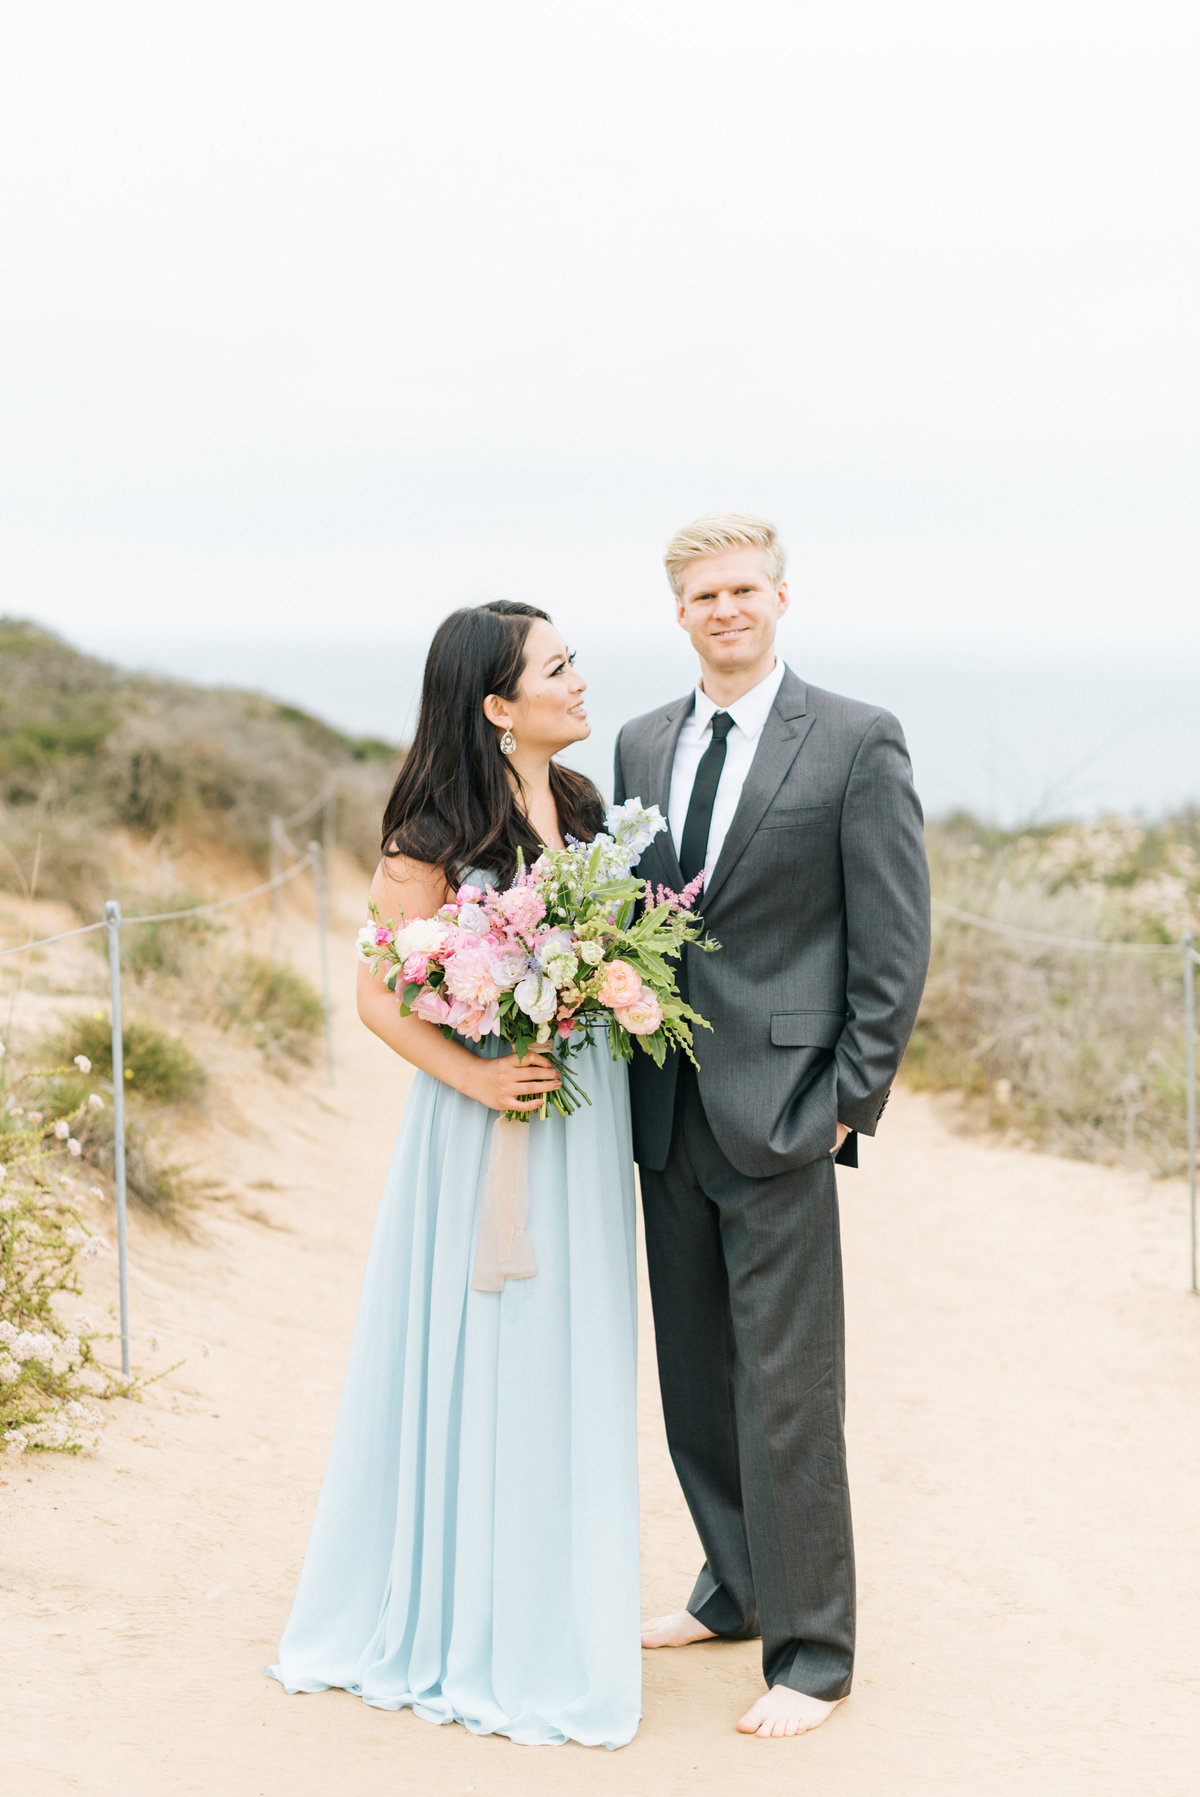 mary and eric san diego wedding 2018-4